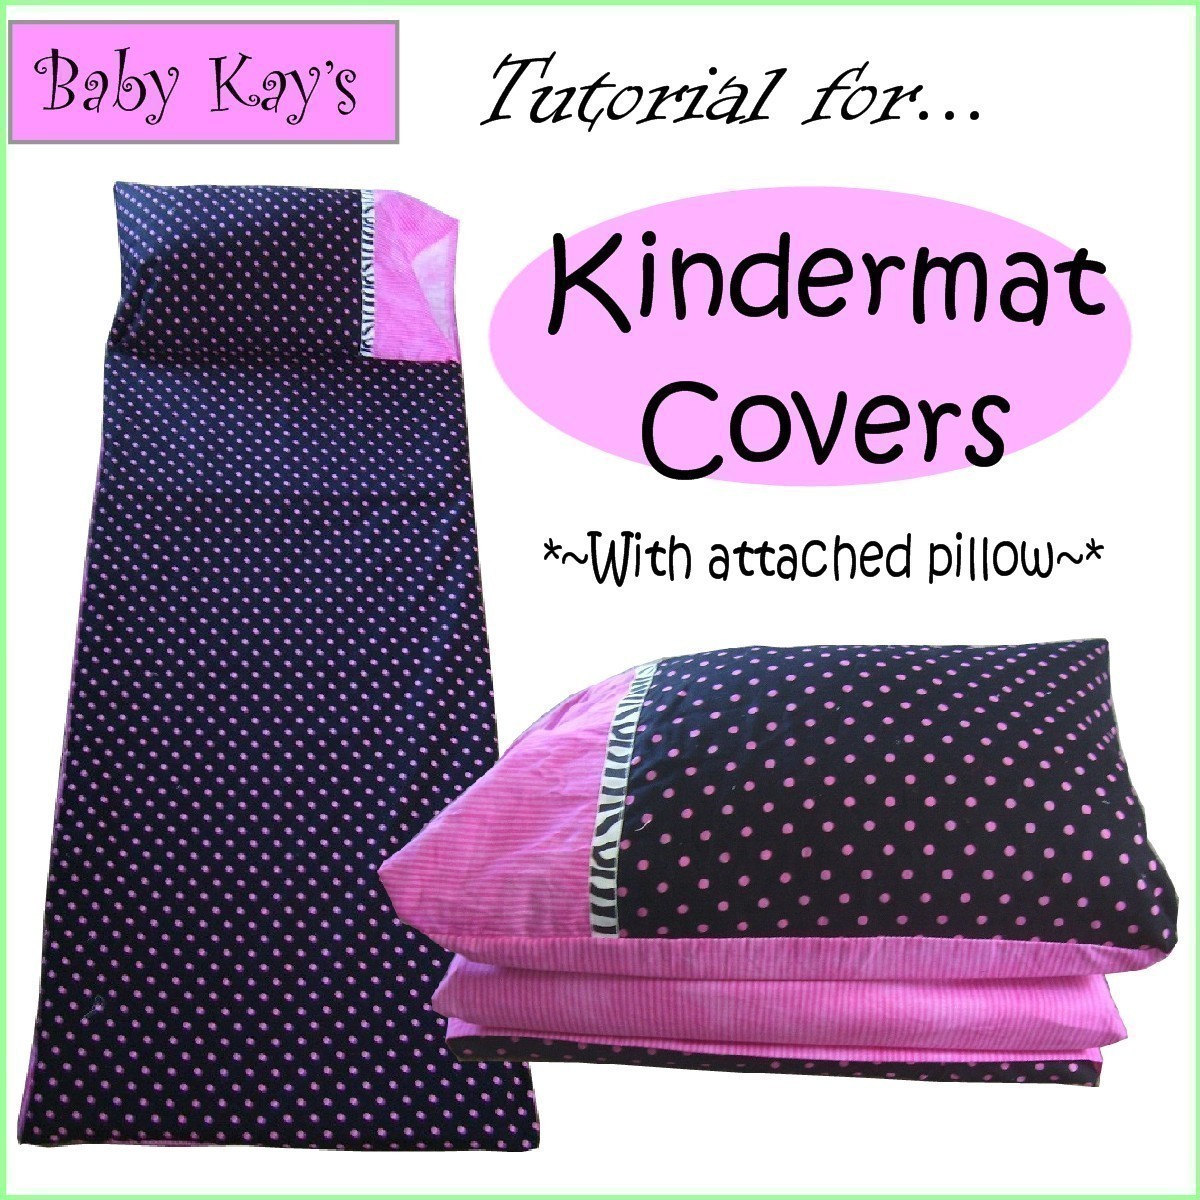 How To Make Removable Throw Pillow Covers With Velcro Closure : diy tutorial for KINDERMAT COVERS with attached pillow PDF